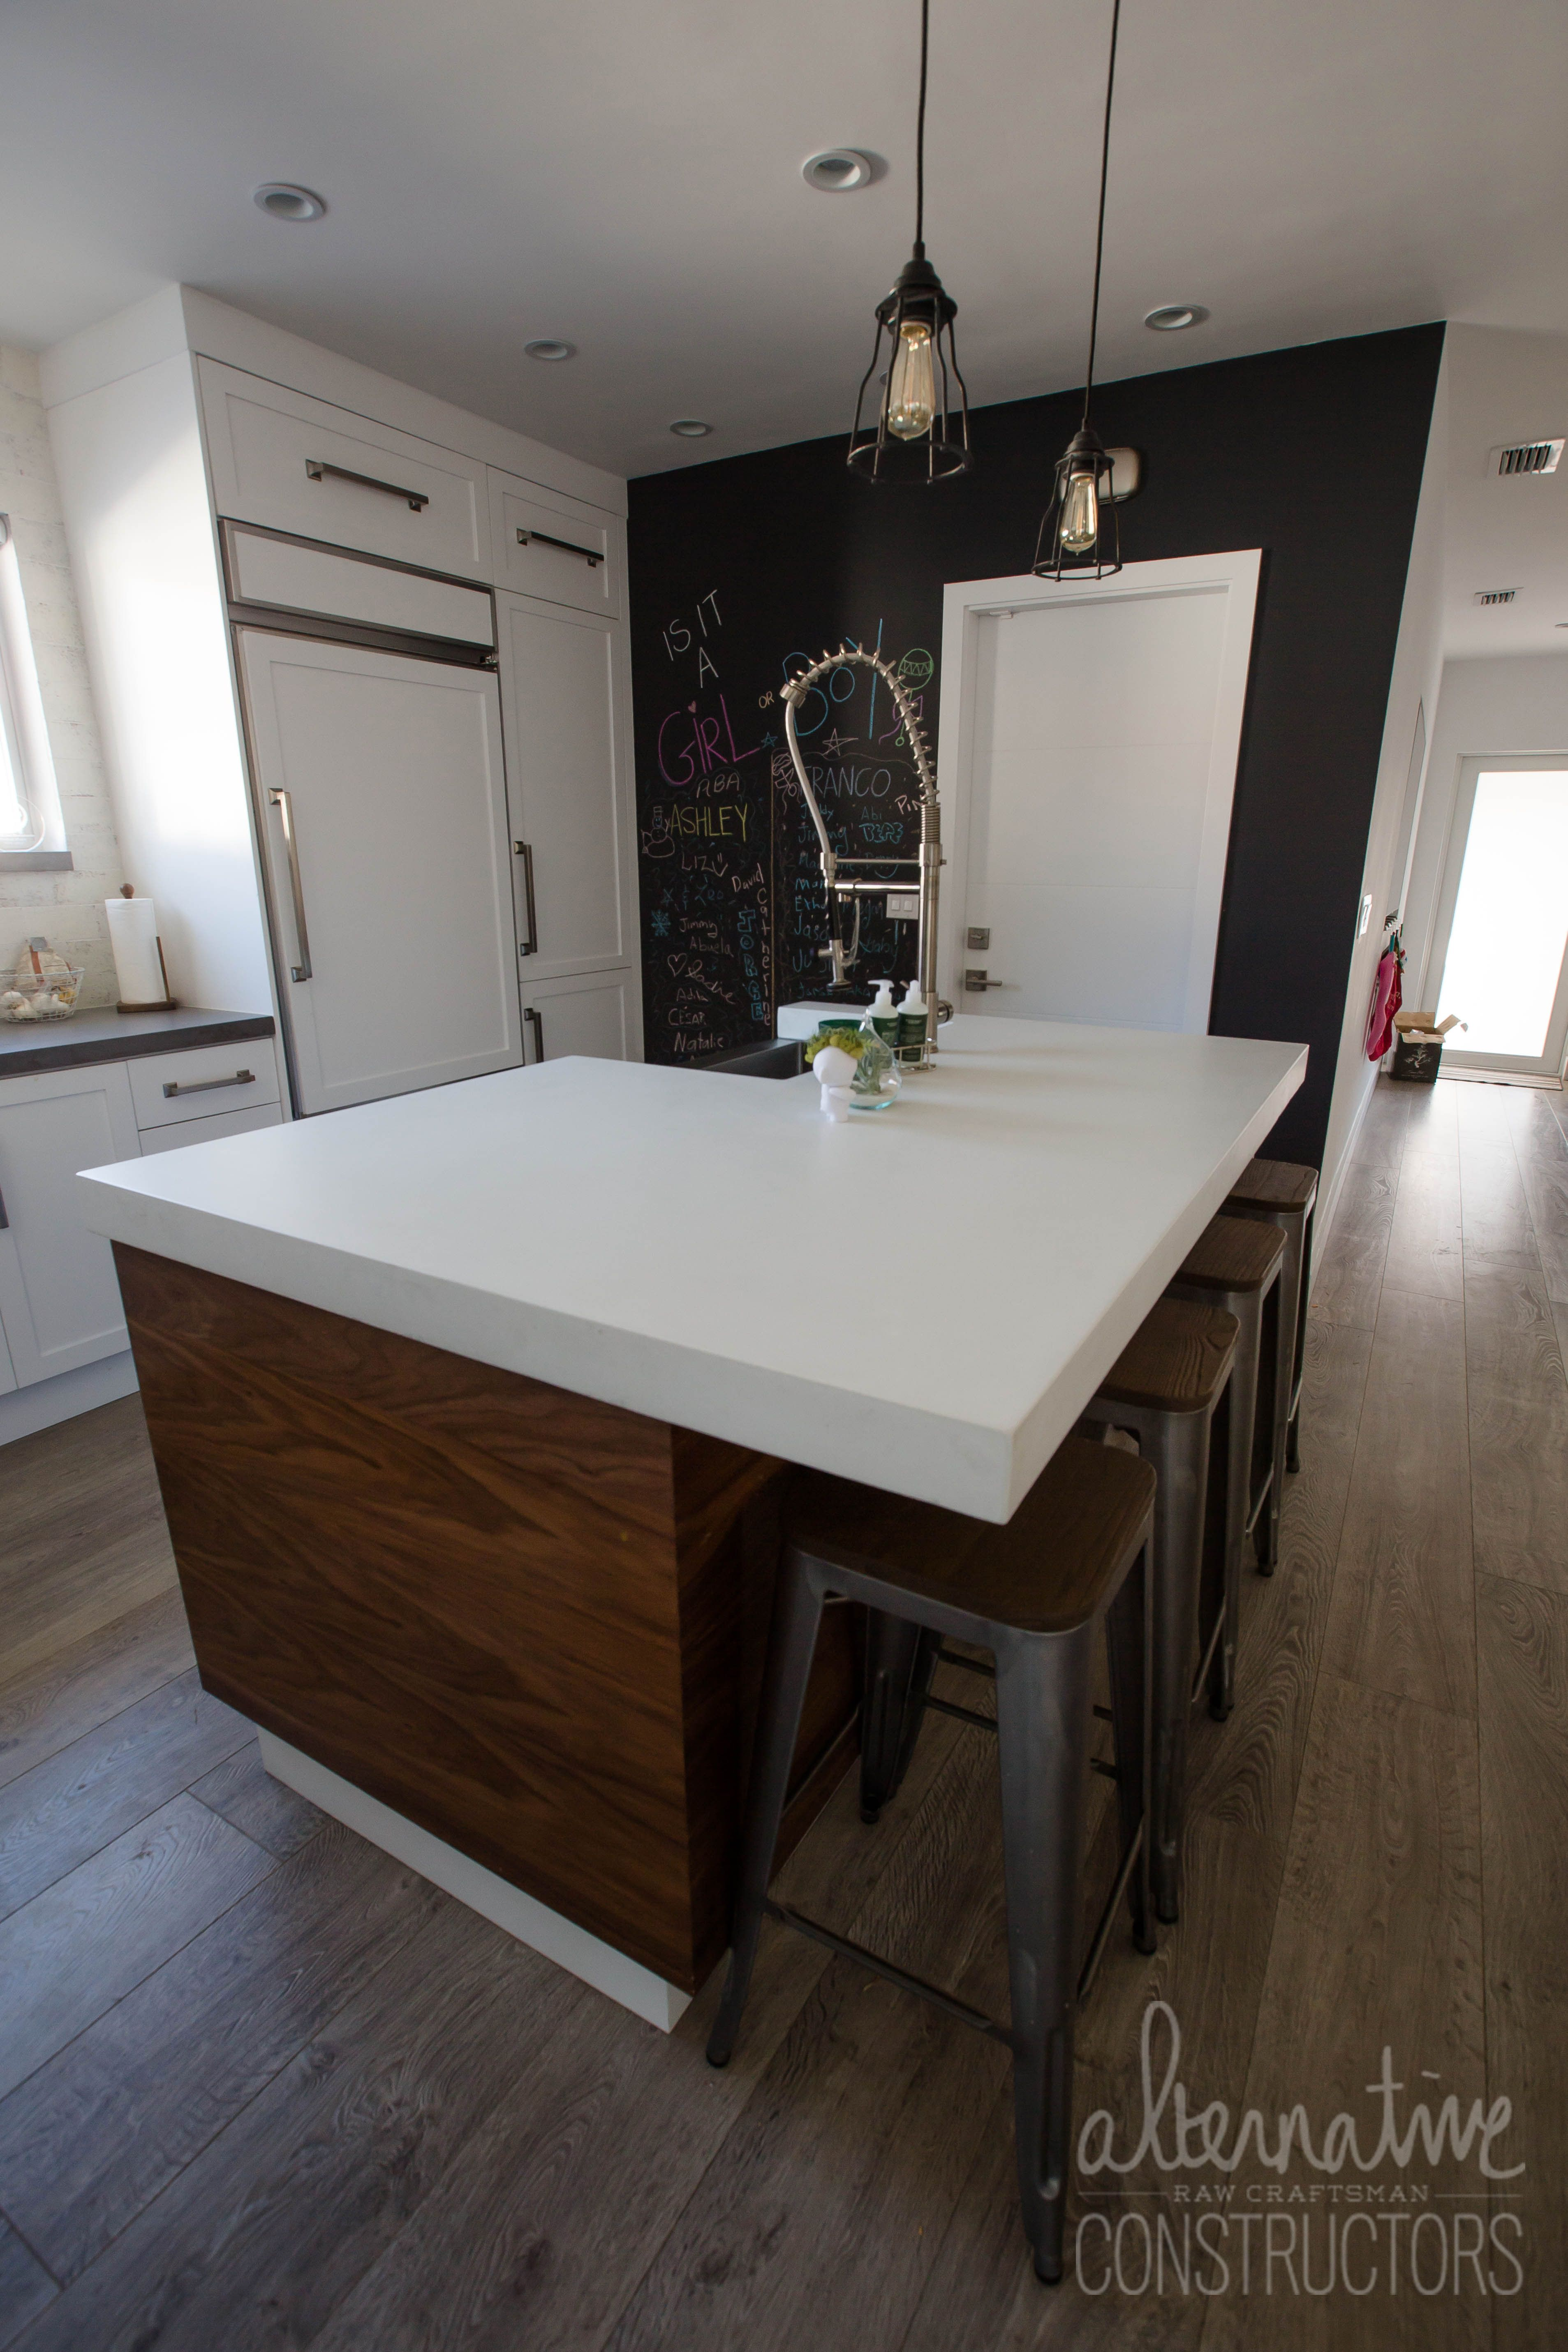 White concrete kitchen island countertop with hardwood side